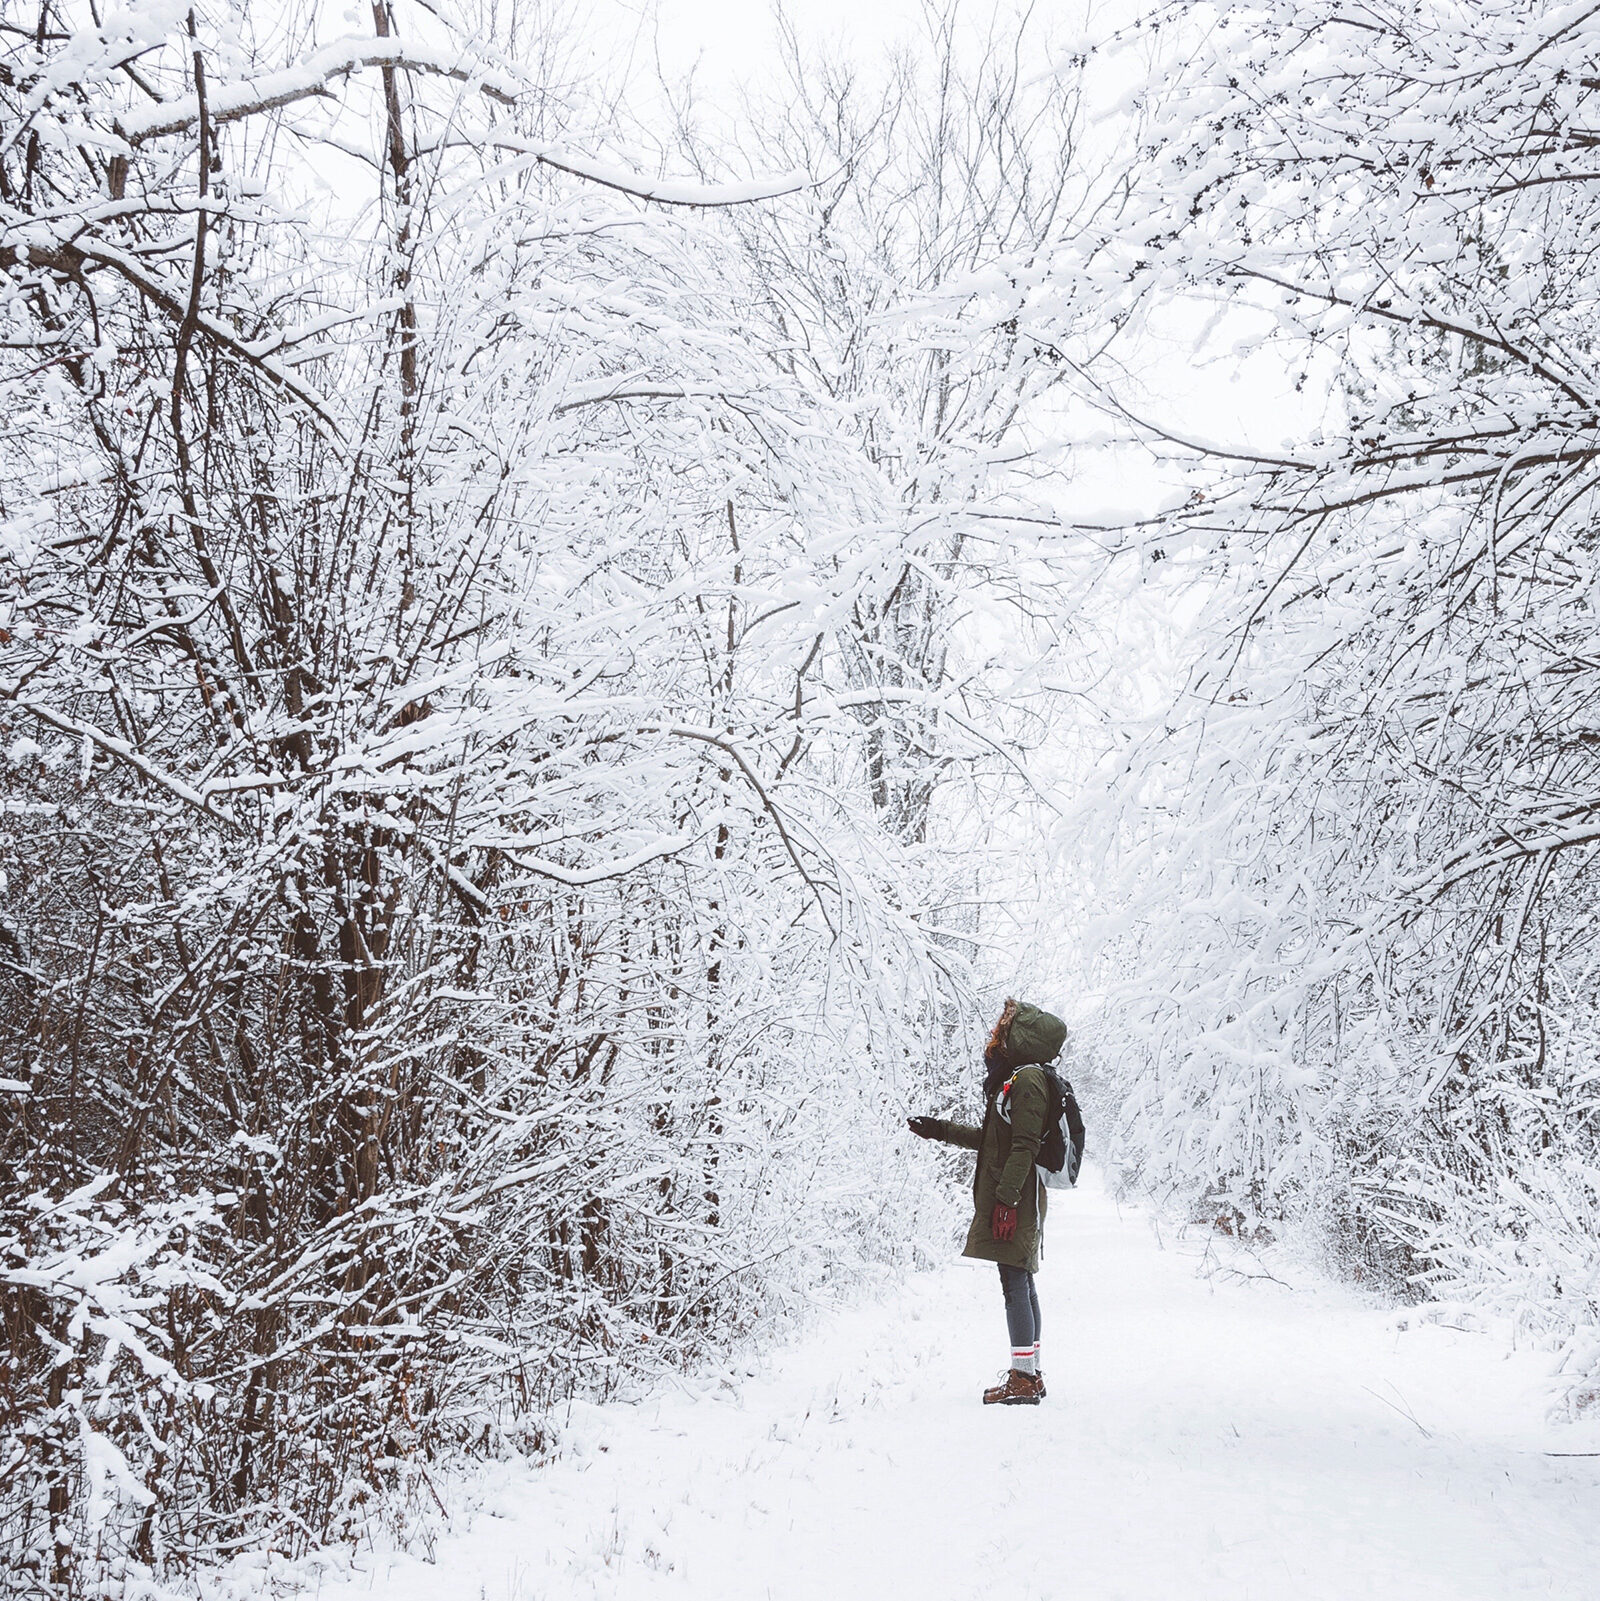 Woman standing on a winter trail looking up at the trees covered in snow